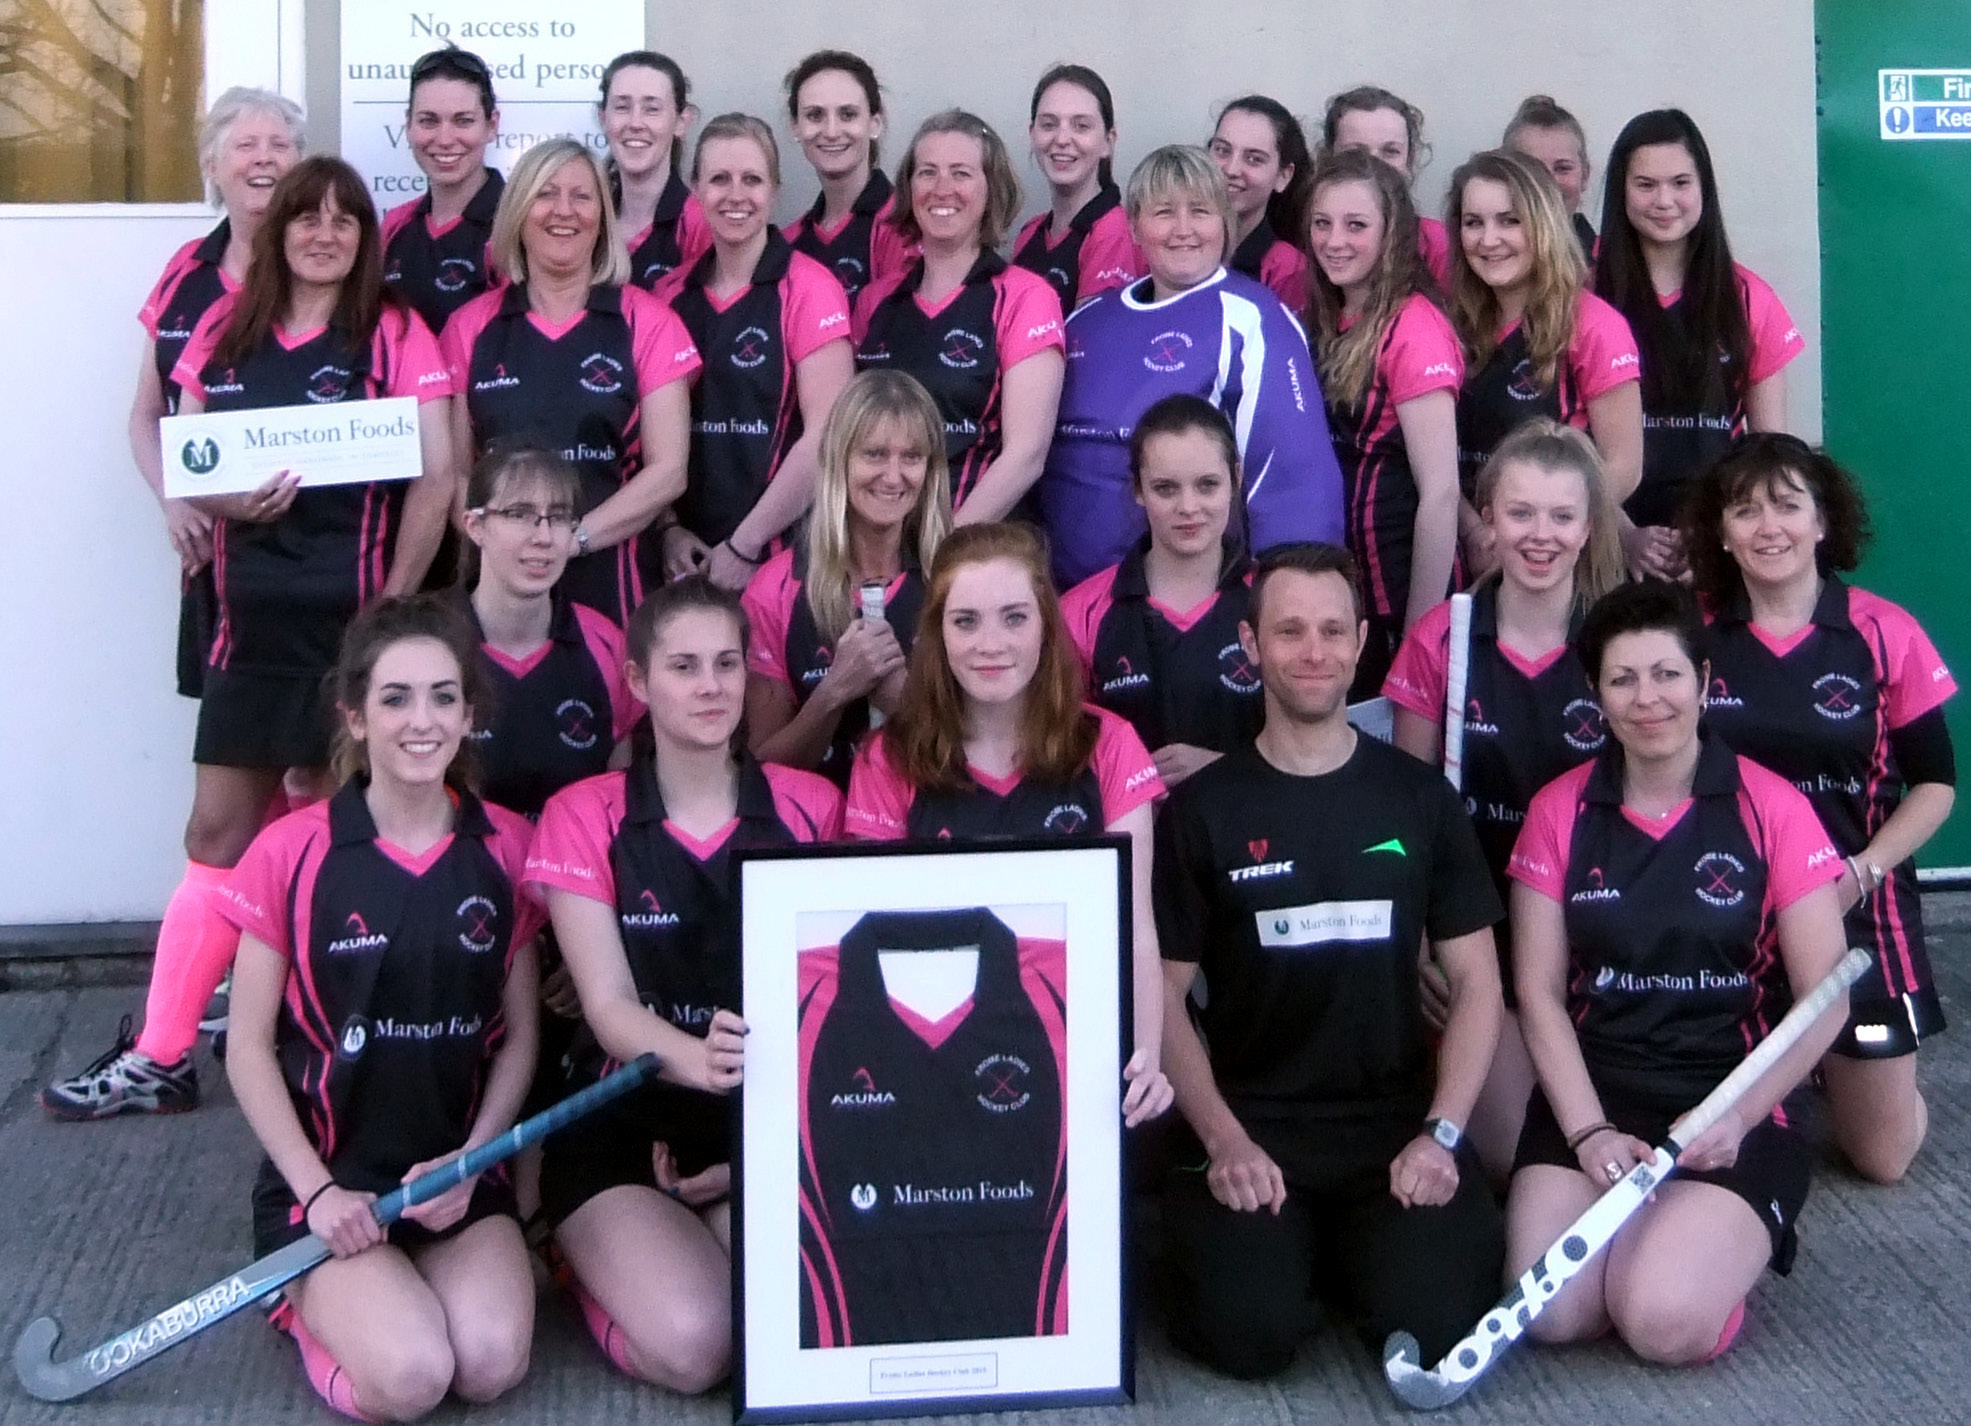 Paul Ryman Fitness & Frome Ladies Hockey Team